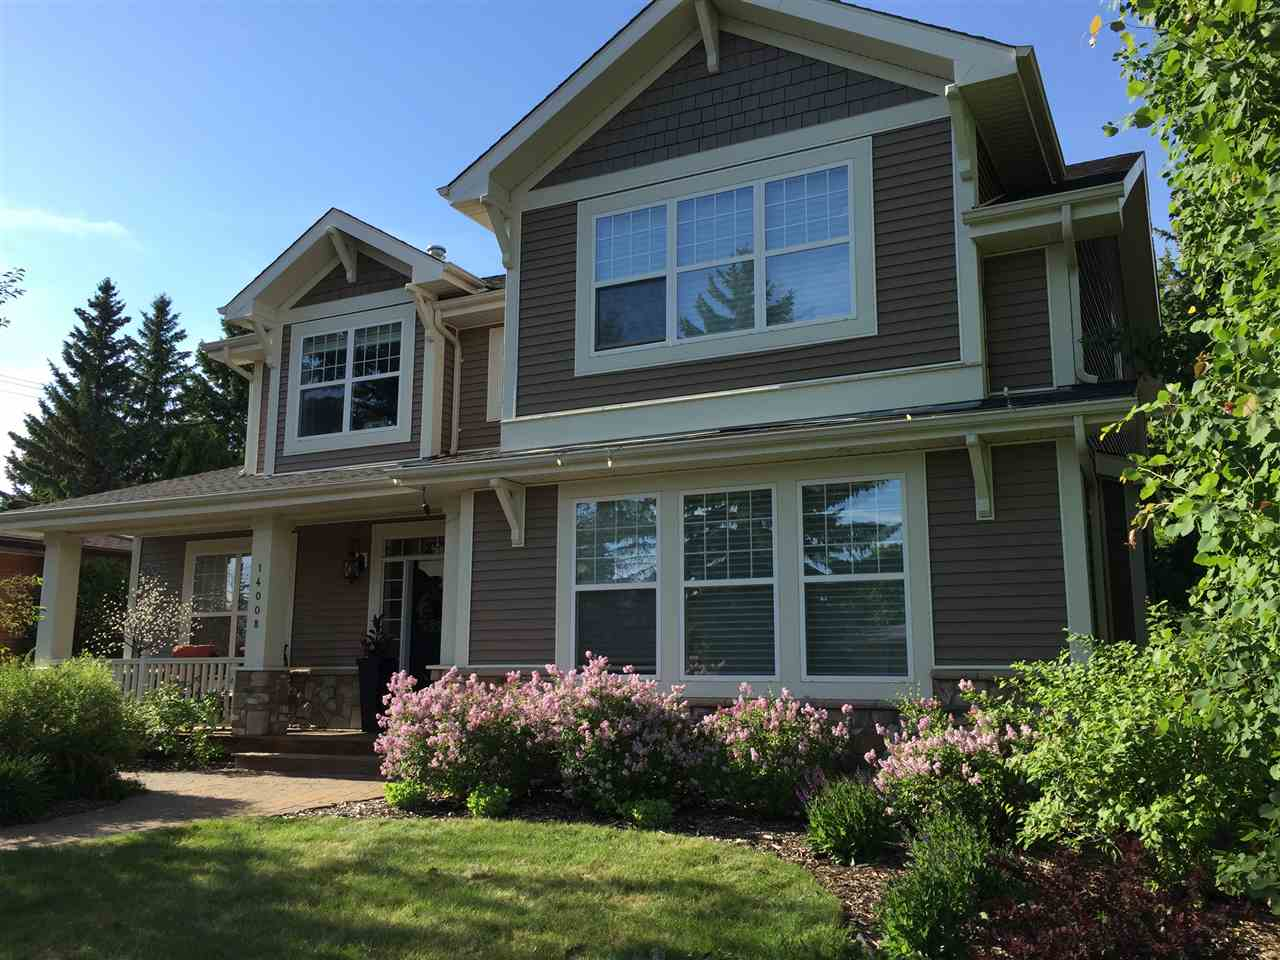 14008 85 Avenue NW, 4 bed, 4 bath, at $1,459,000